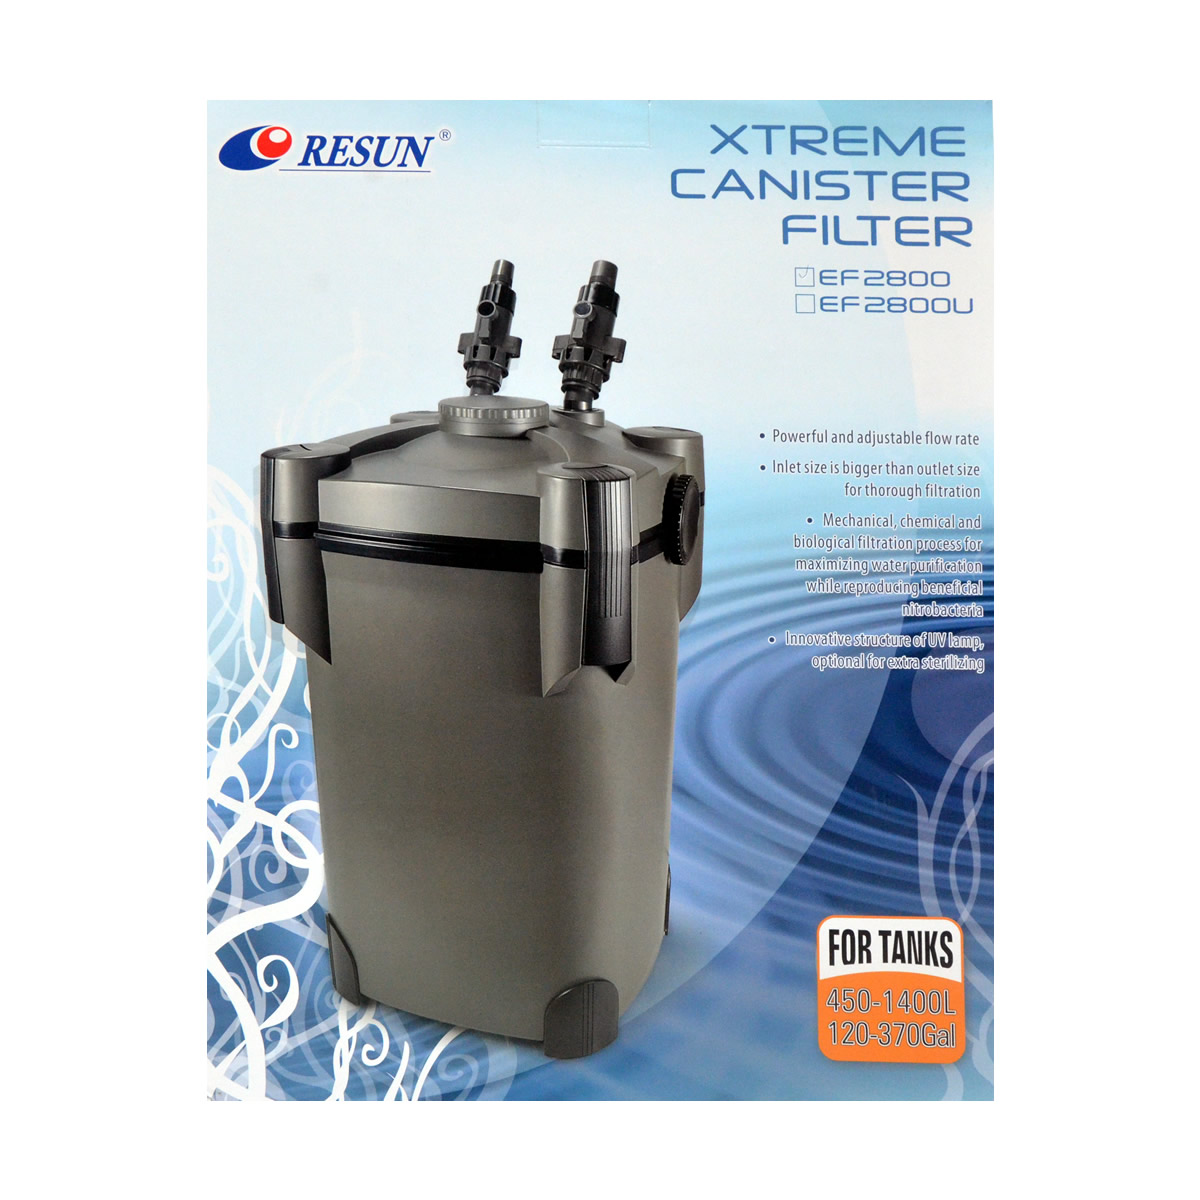 ReSun EF2800 Xtreme Canister Filter 60W 2800L/H 300~1000L